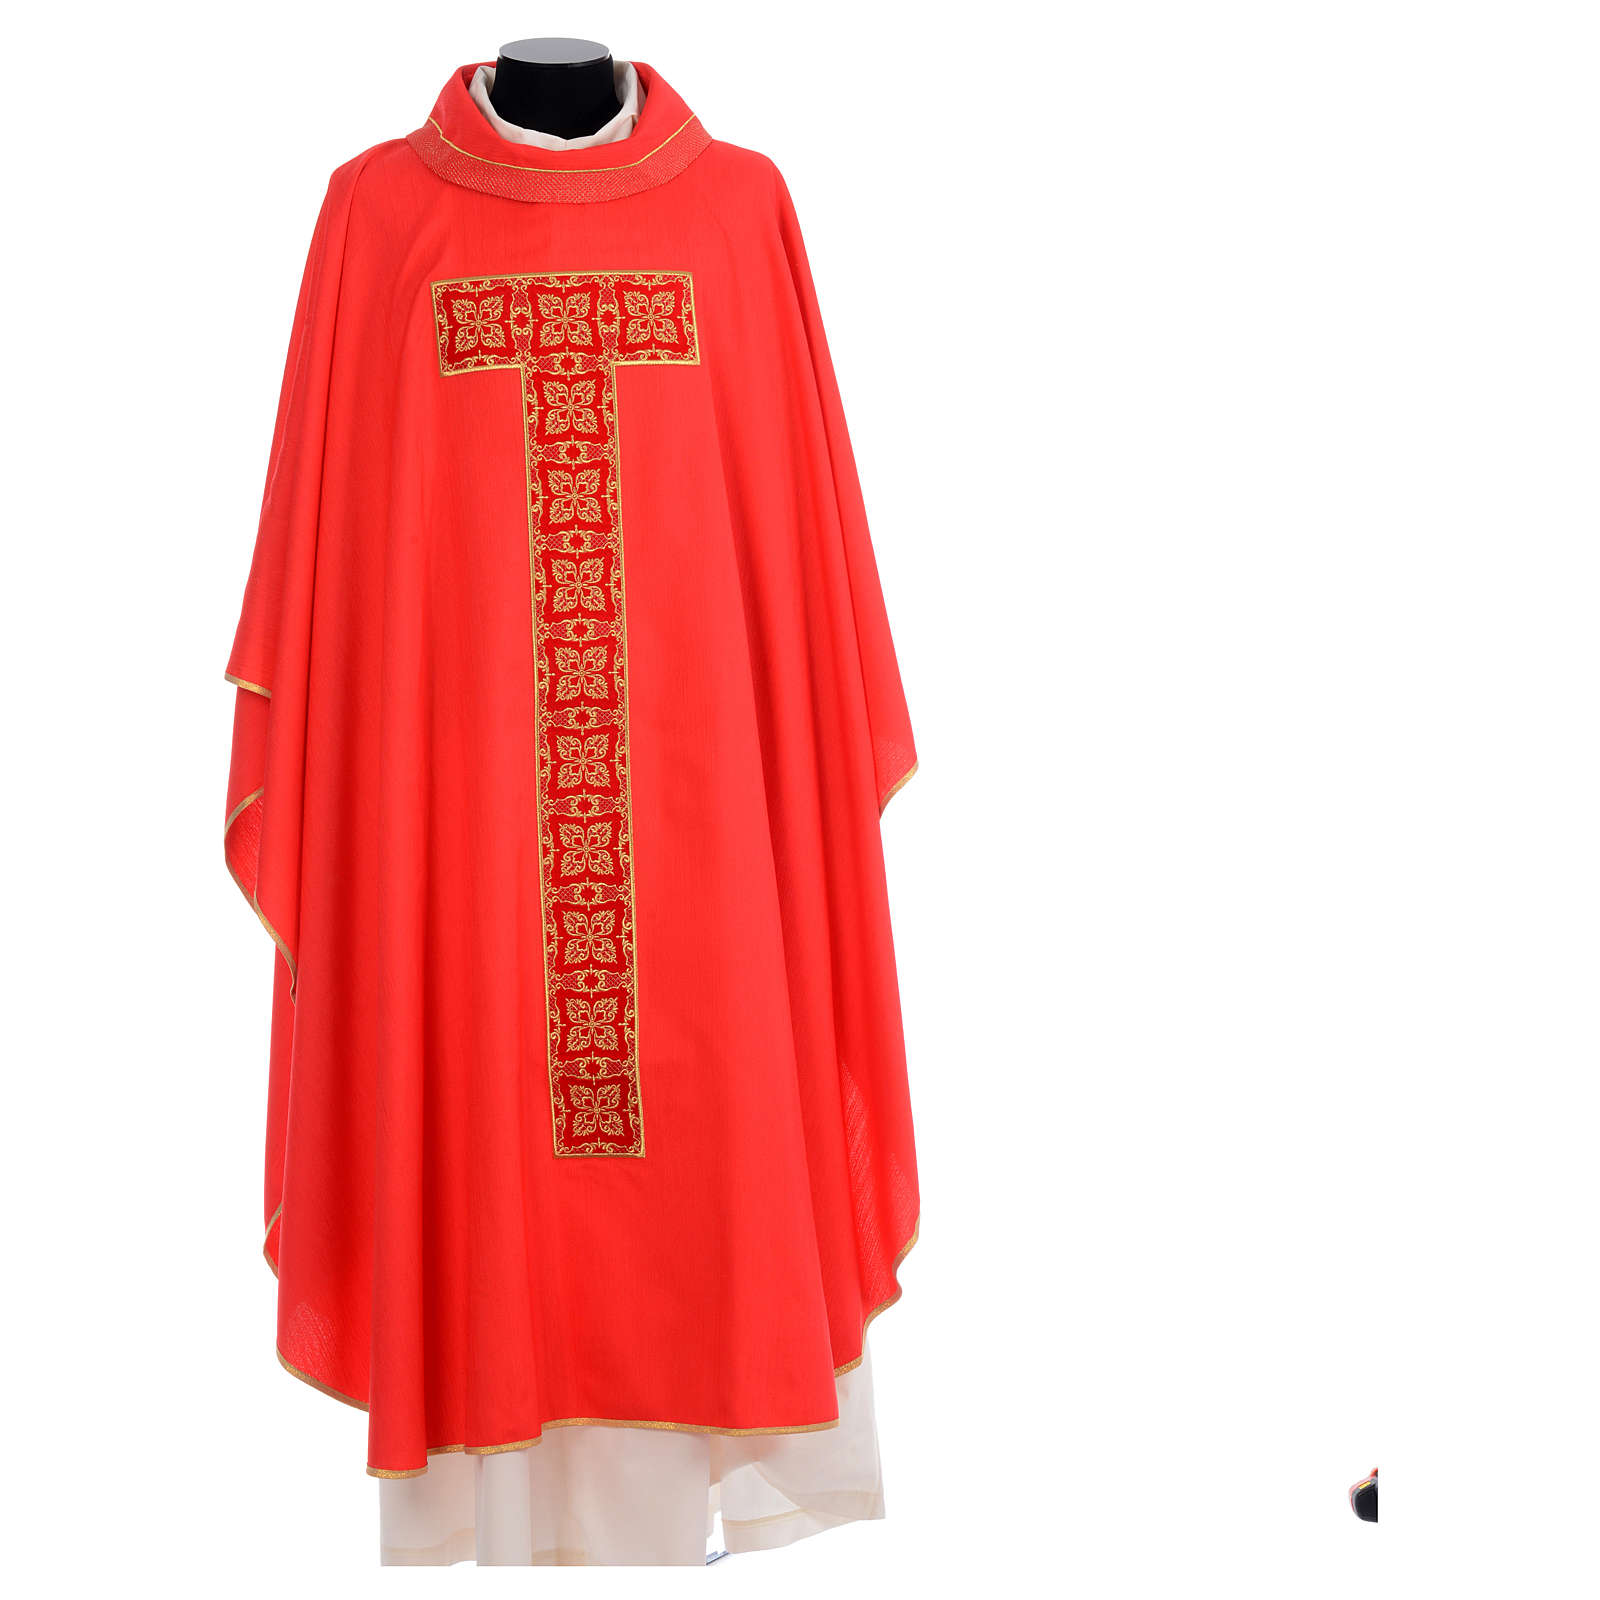 Liturgical chasuble with cross embroidery 4